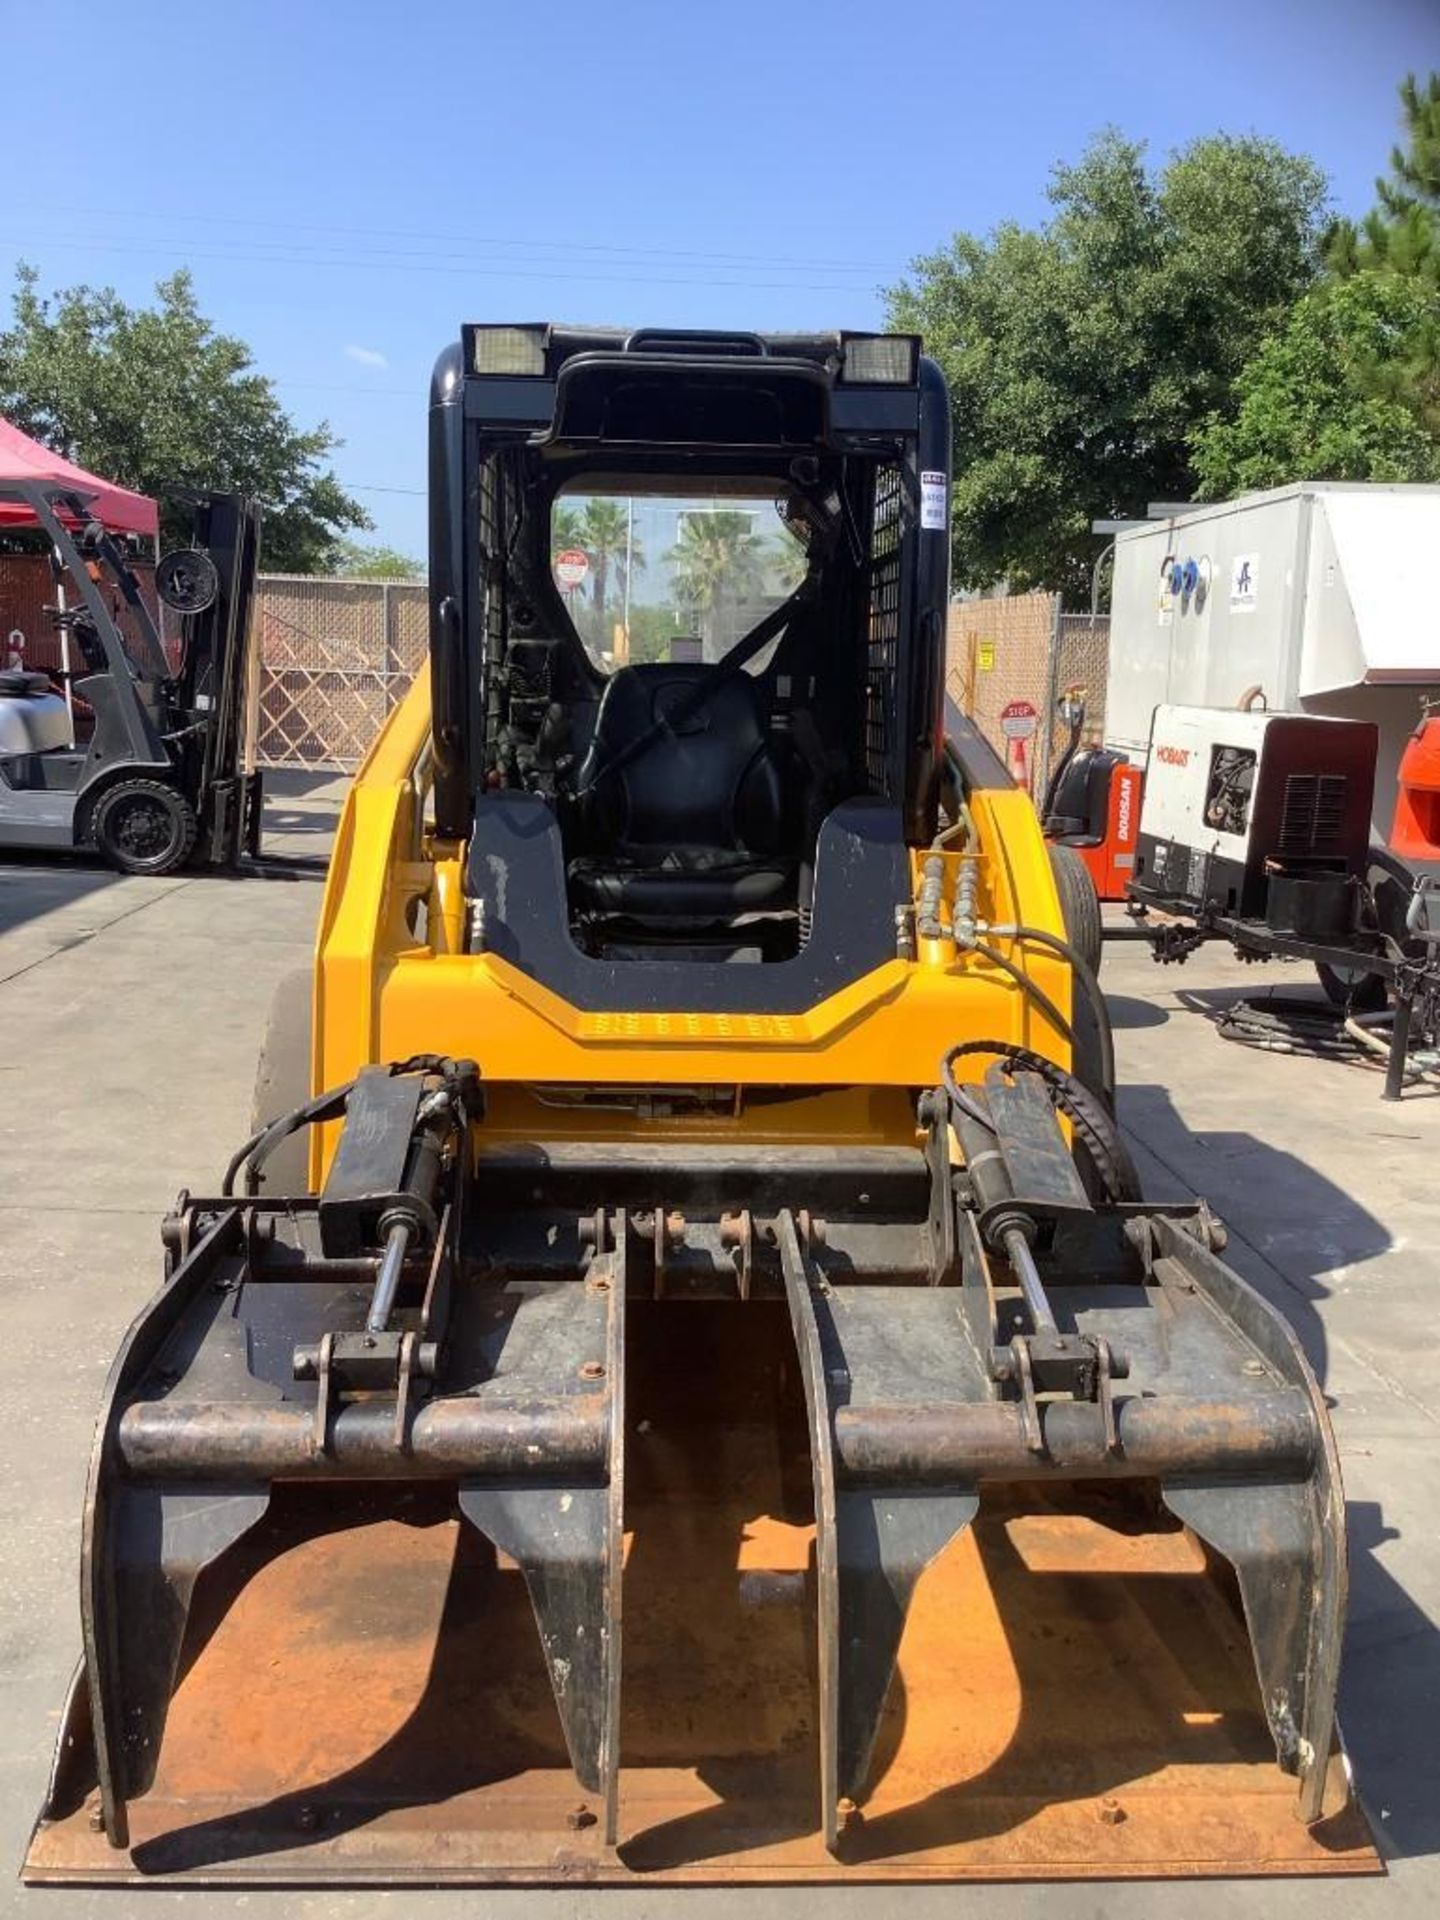 JOHN DEERE SKIDSTEER MODEL 315, DIESEL, GRAPPLE ATTACHMENT, SOLID TIRES, AUX HYDRAULIC, ENCLOSED CAB - Image 8 of 15